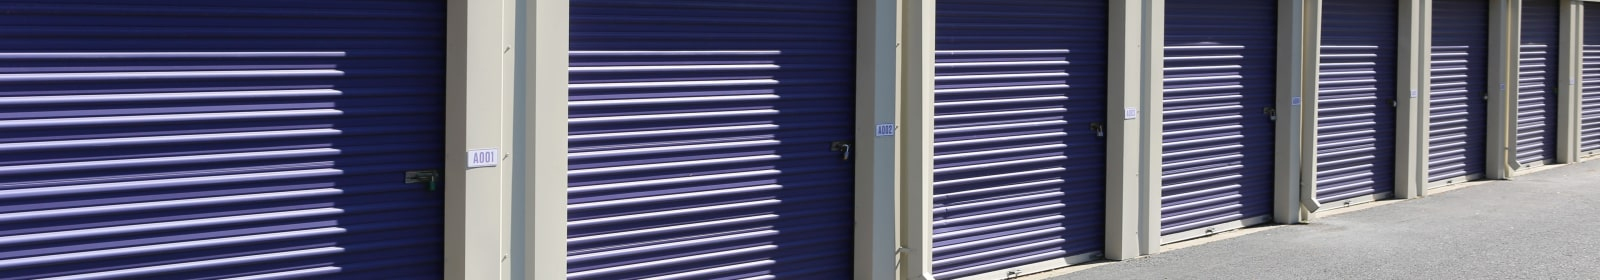 StoreSmart Self-Storage features in Fayetteville, North Carolina